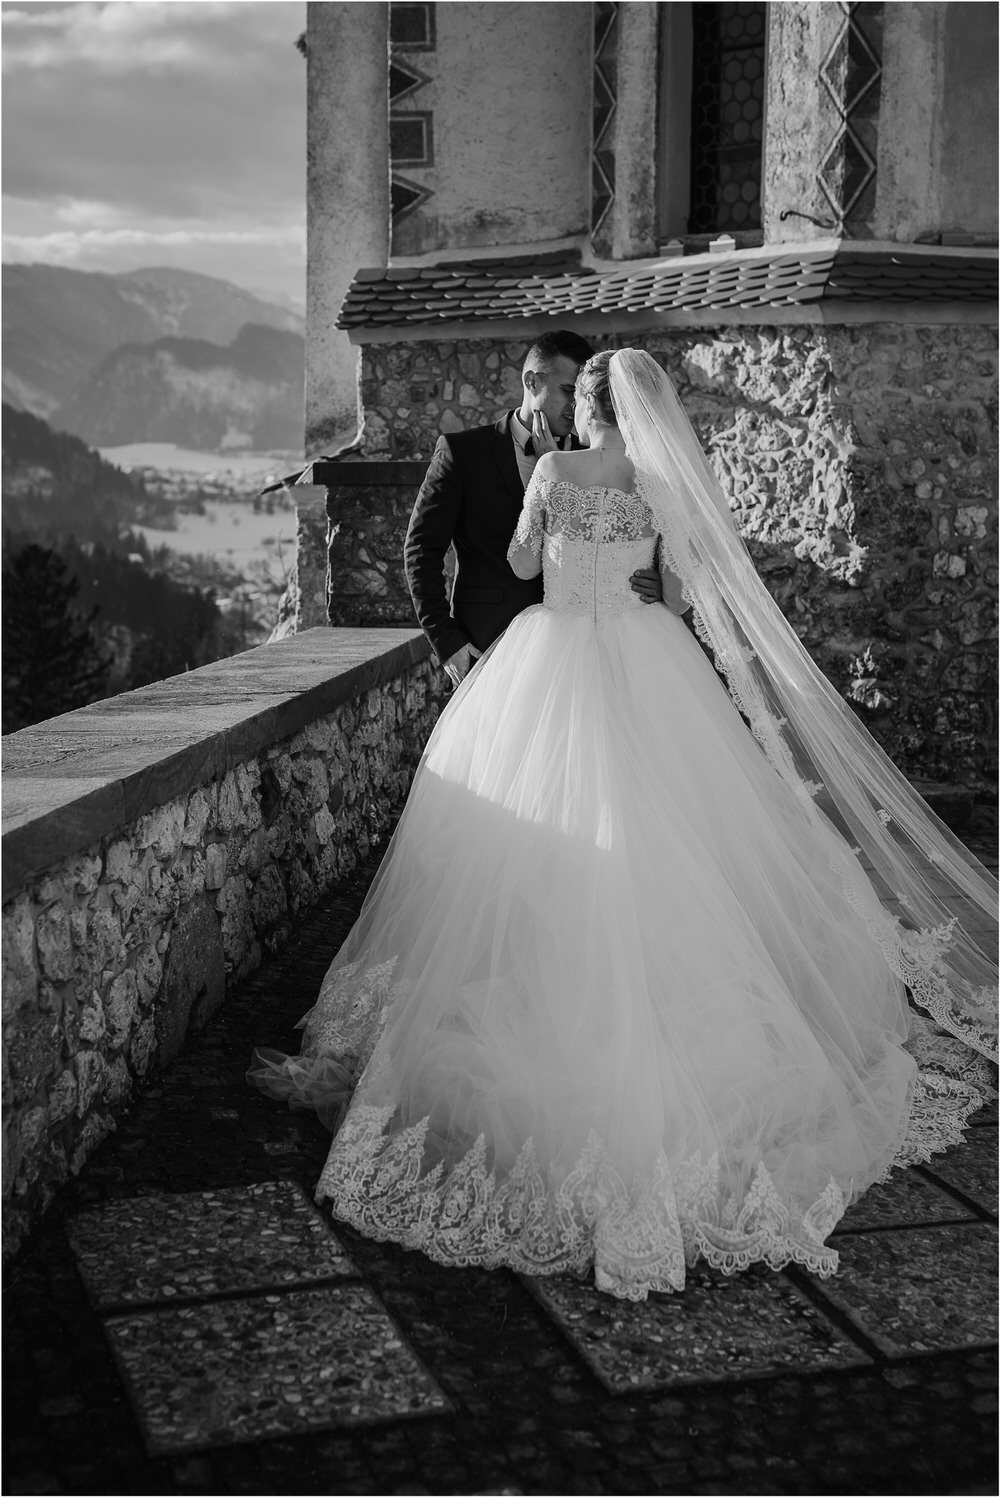 lake bled elopement slovenia wedding bled photographer photography nika grega lake jezero ljubljana 0040.jpg